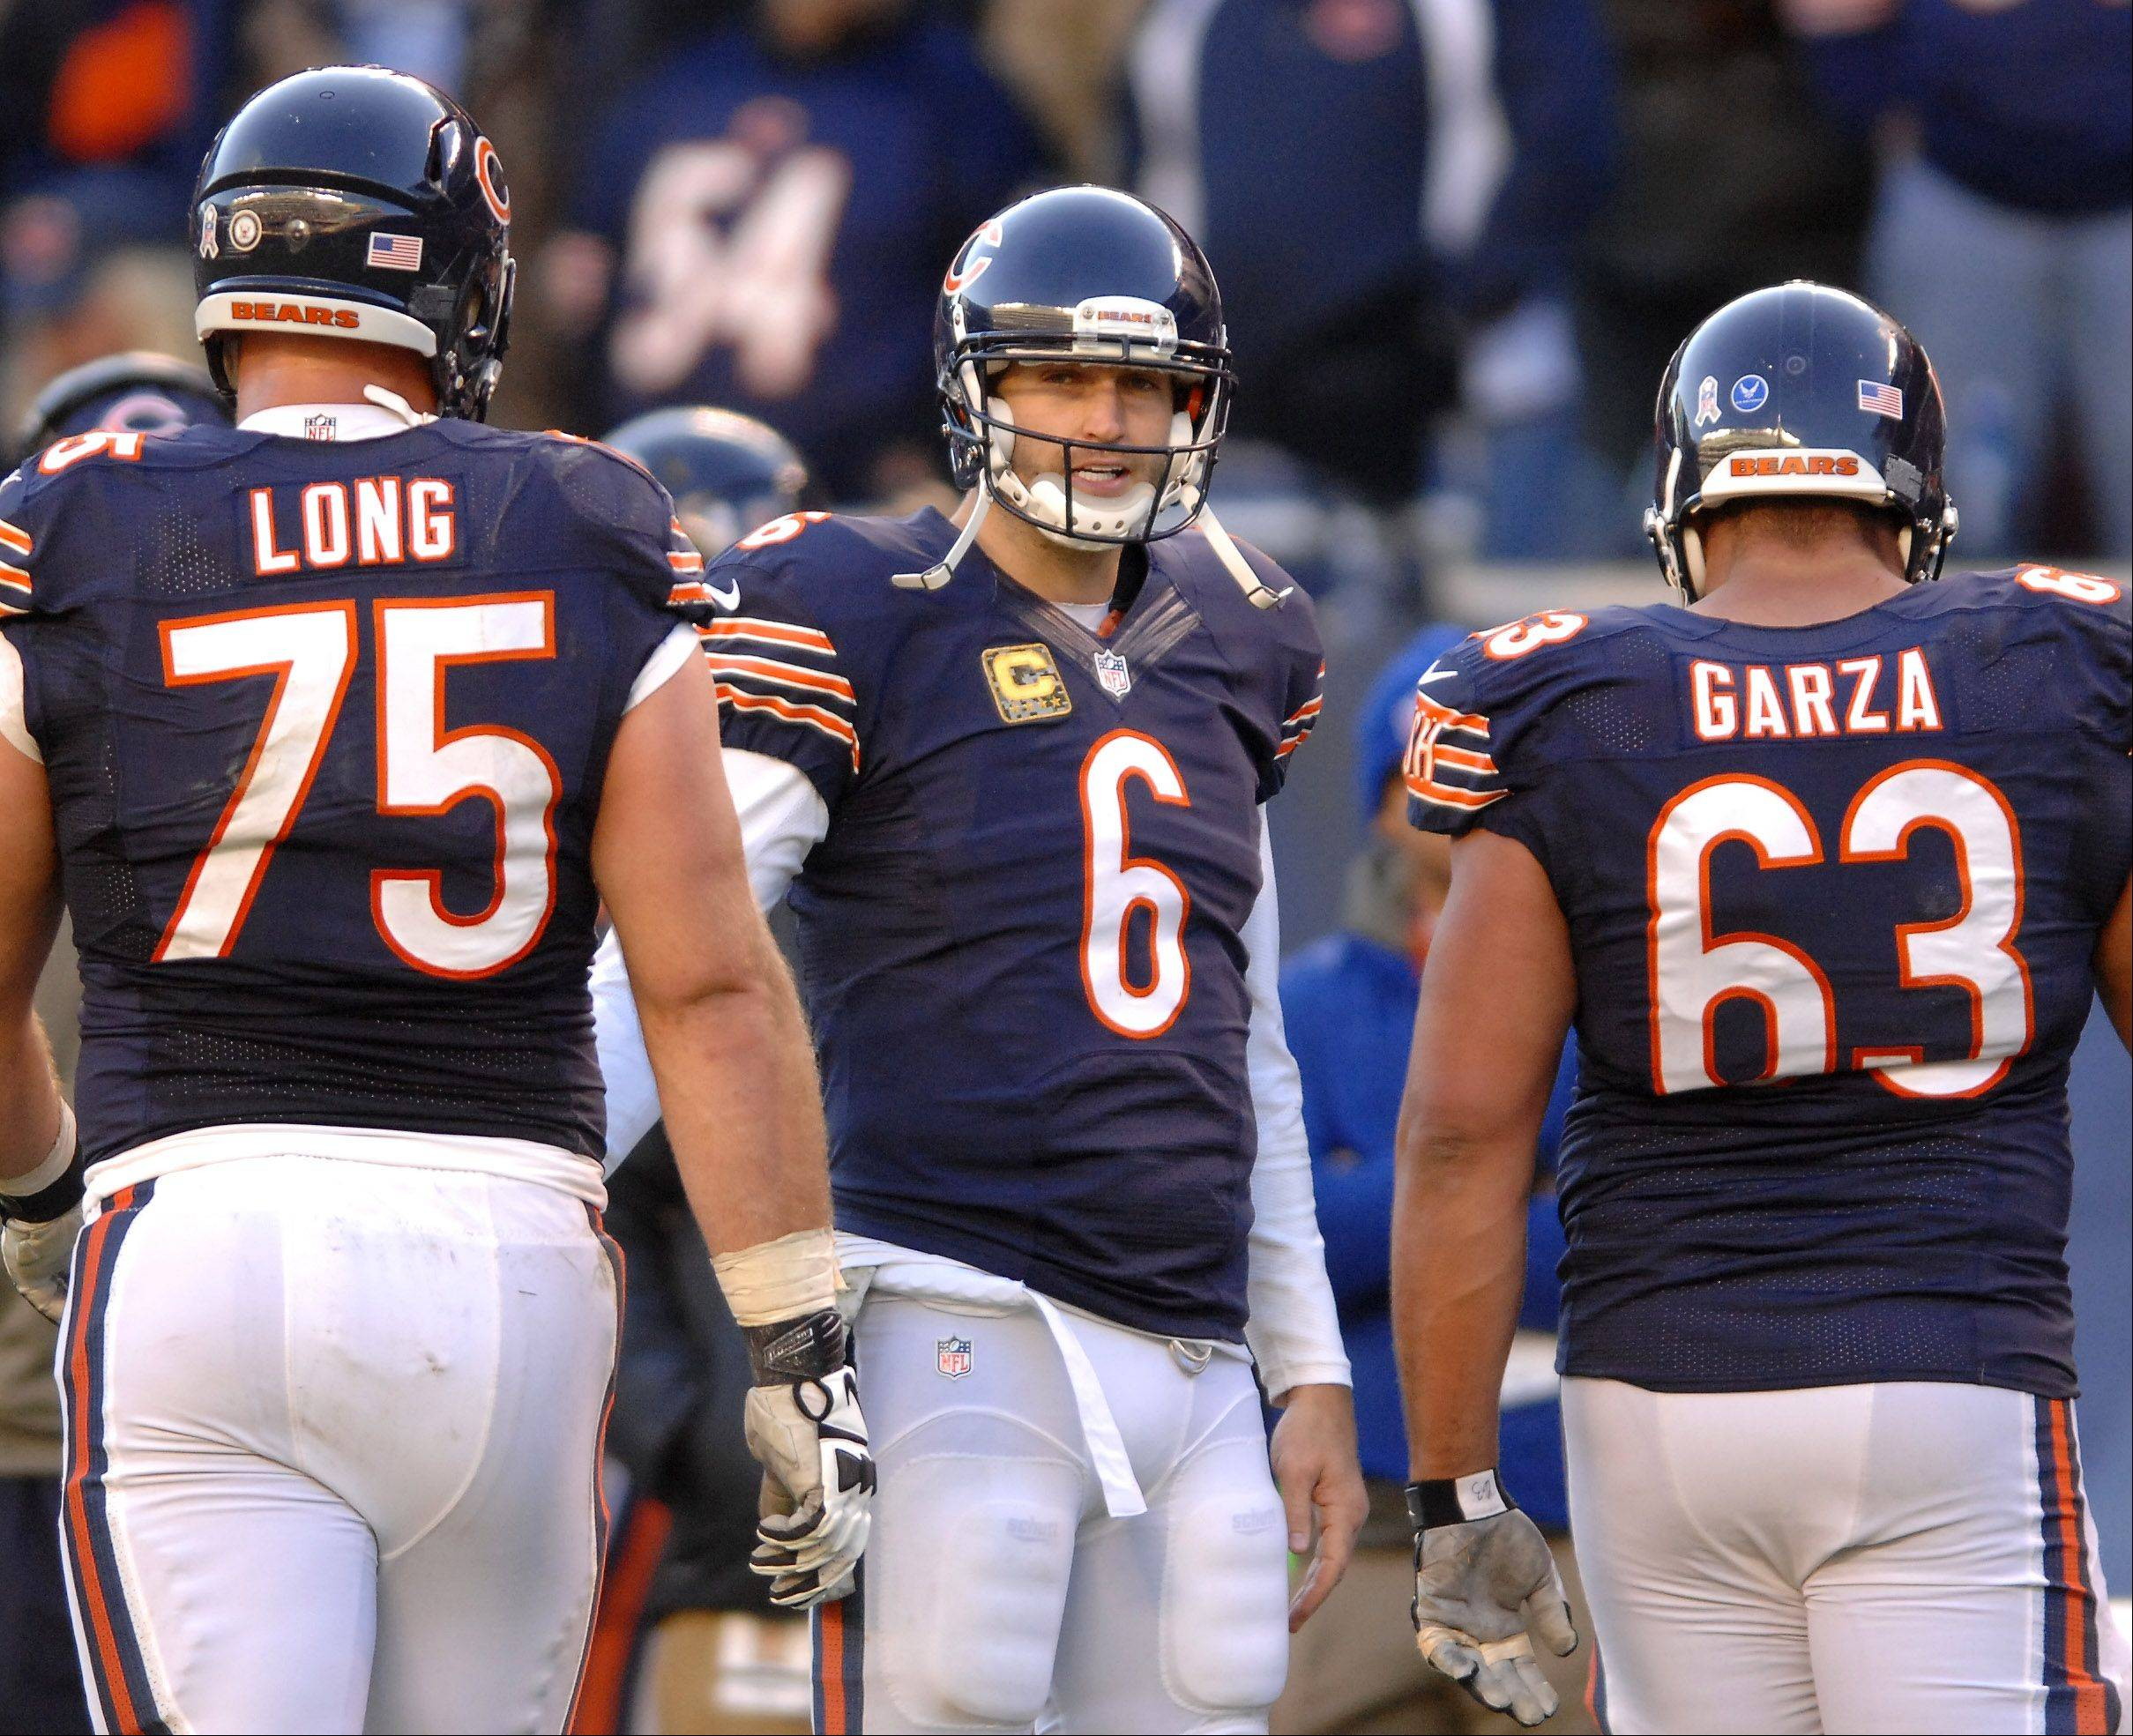 Jay Cutler stands on the sidelines and watches his teammates come off the field after Matt Forte's failed 2-point conversion attempt dashed the Bears' hopes for a comeback against Detroit on Sunday at Soldier Field.